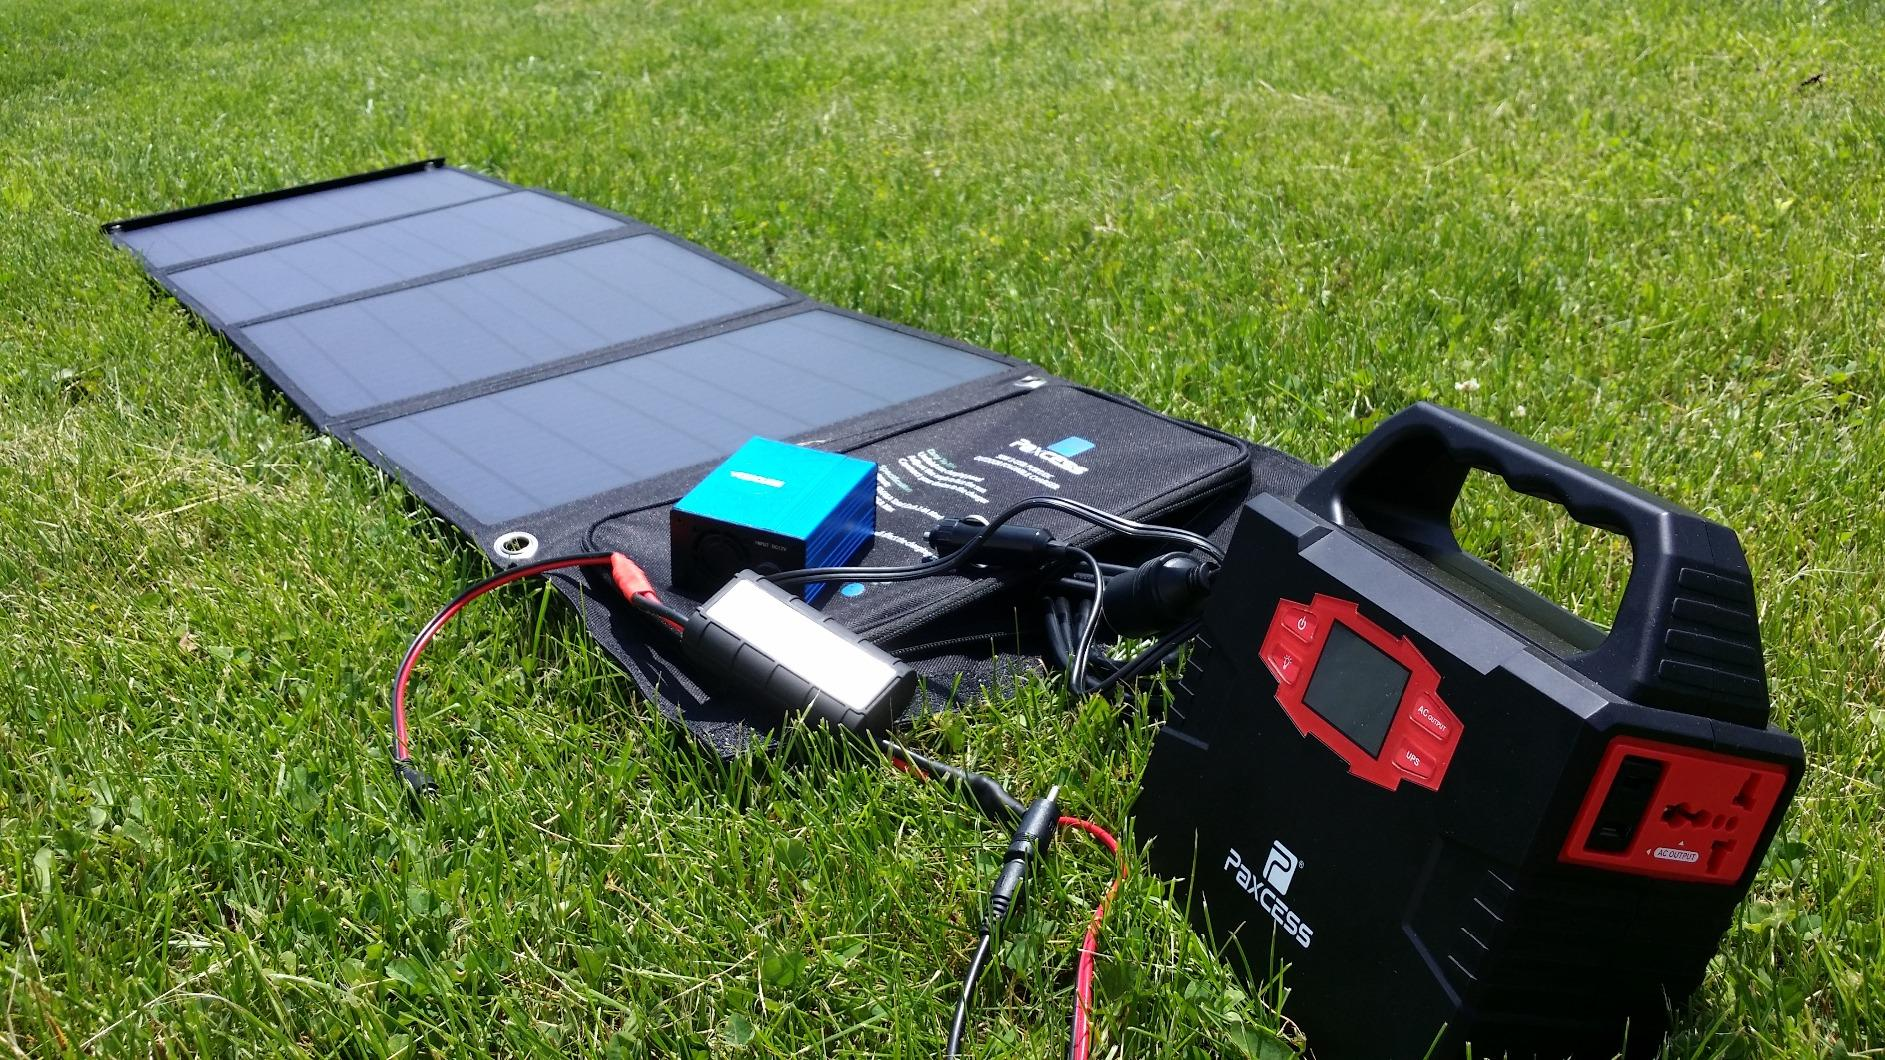 The Paxcess 50W portable solar generator. Just like the other models of Solar generator supplies i have tried,this one definitely hasn't disappointed me!